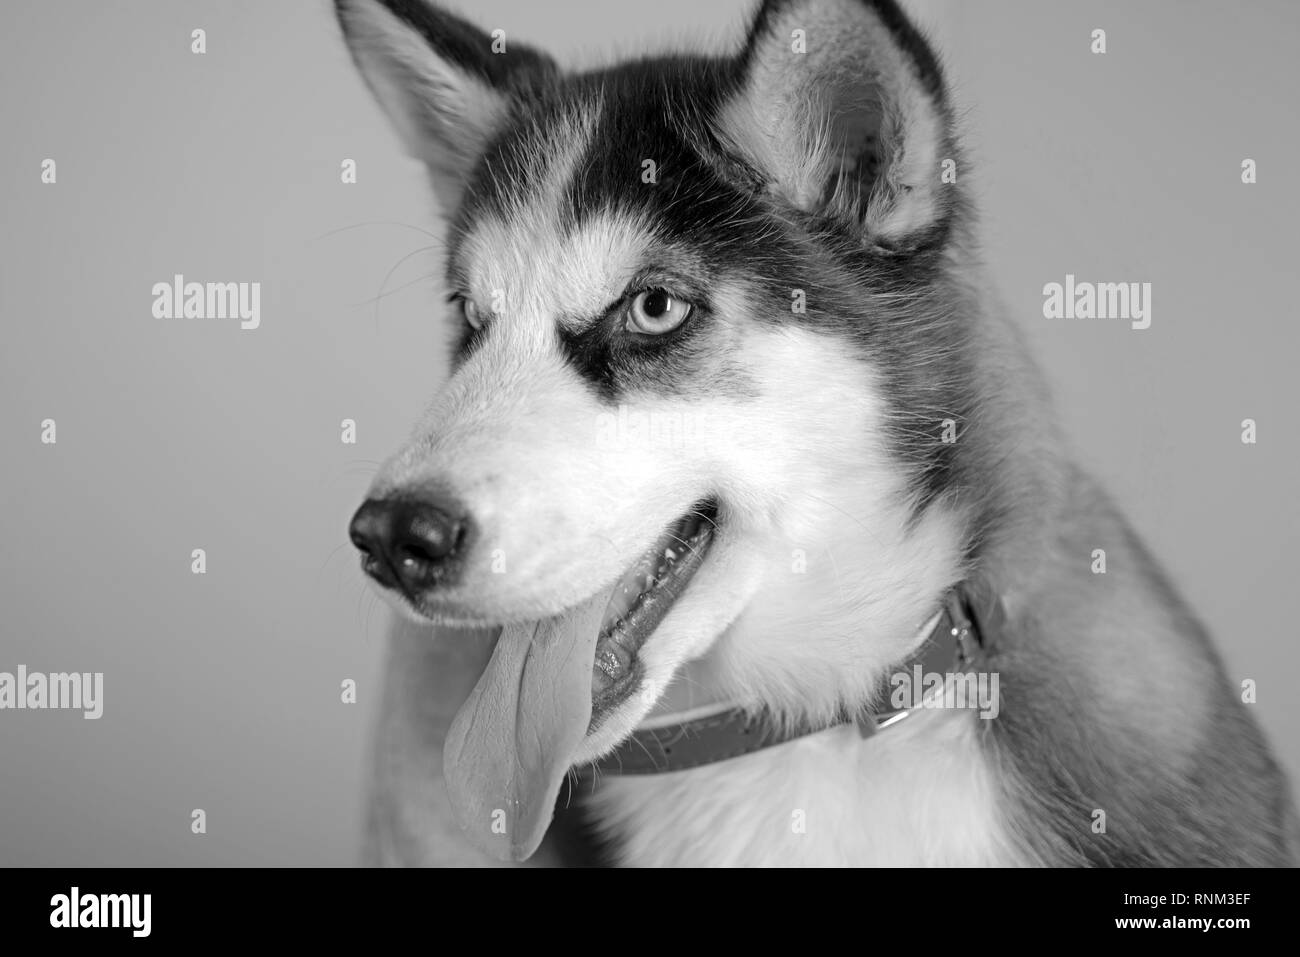 He is more than just a dog. Husky dog. Cute pet dog. Siberian husky is a beautiful purebred dog breed. Husky with blue eyes and wolf like look. Pet - Stock Image